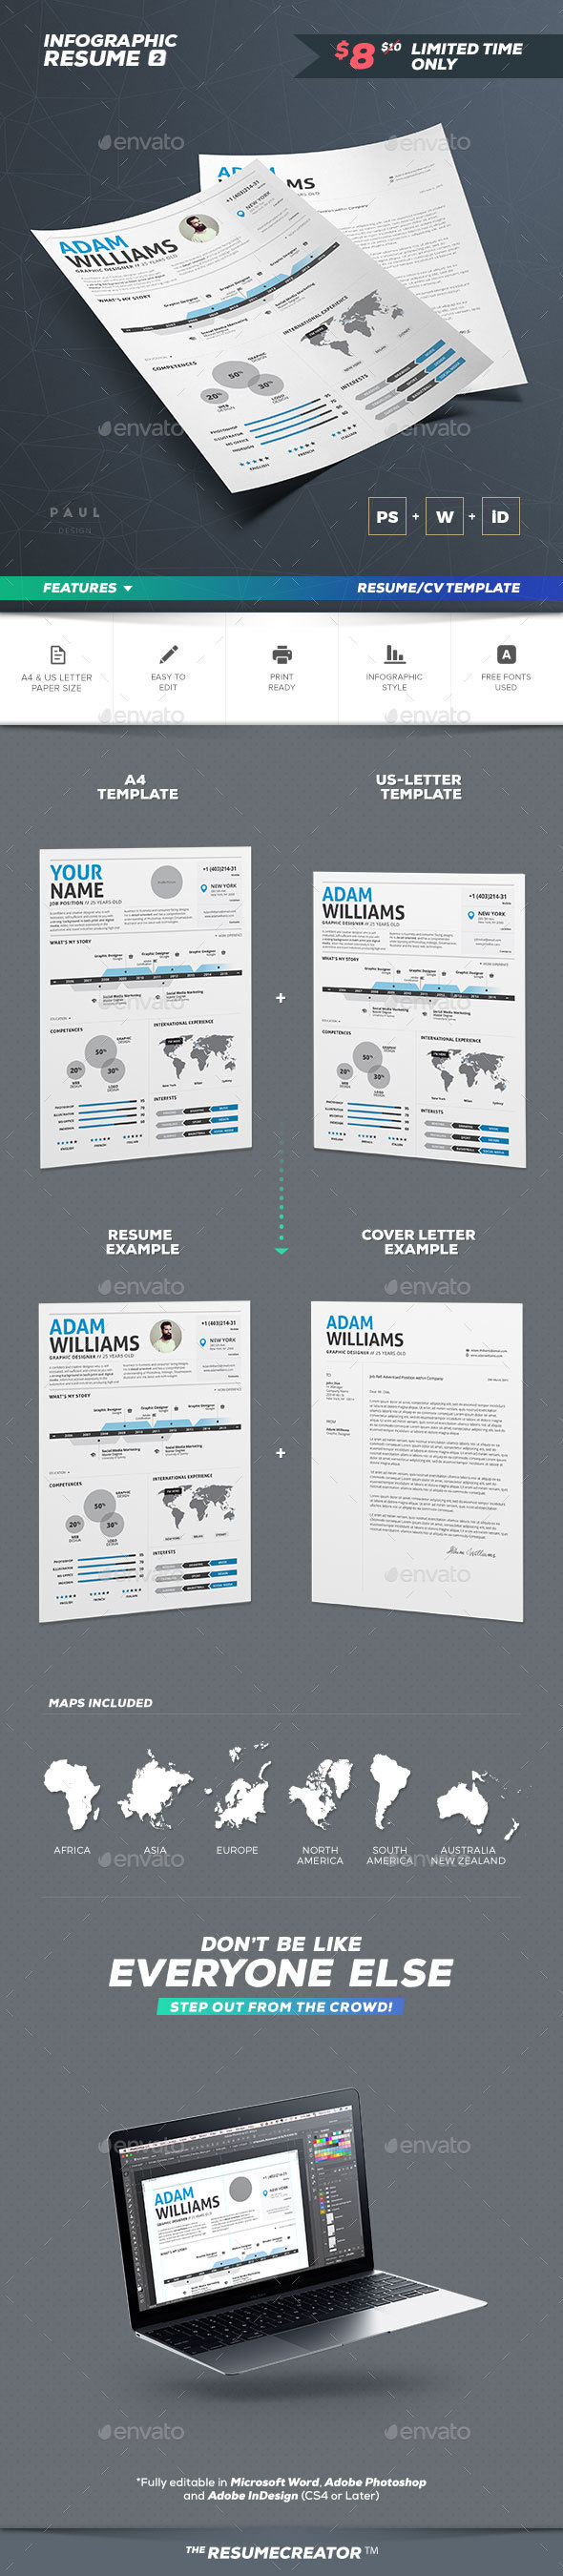 Infographic Resume Vol. 2